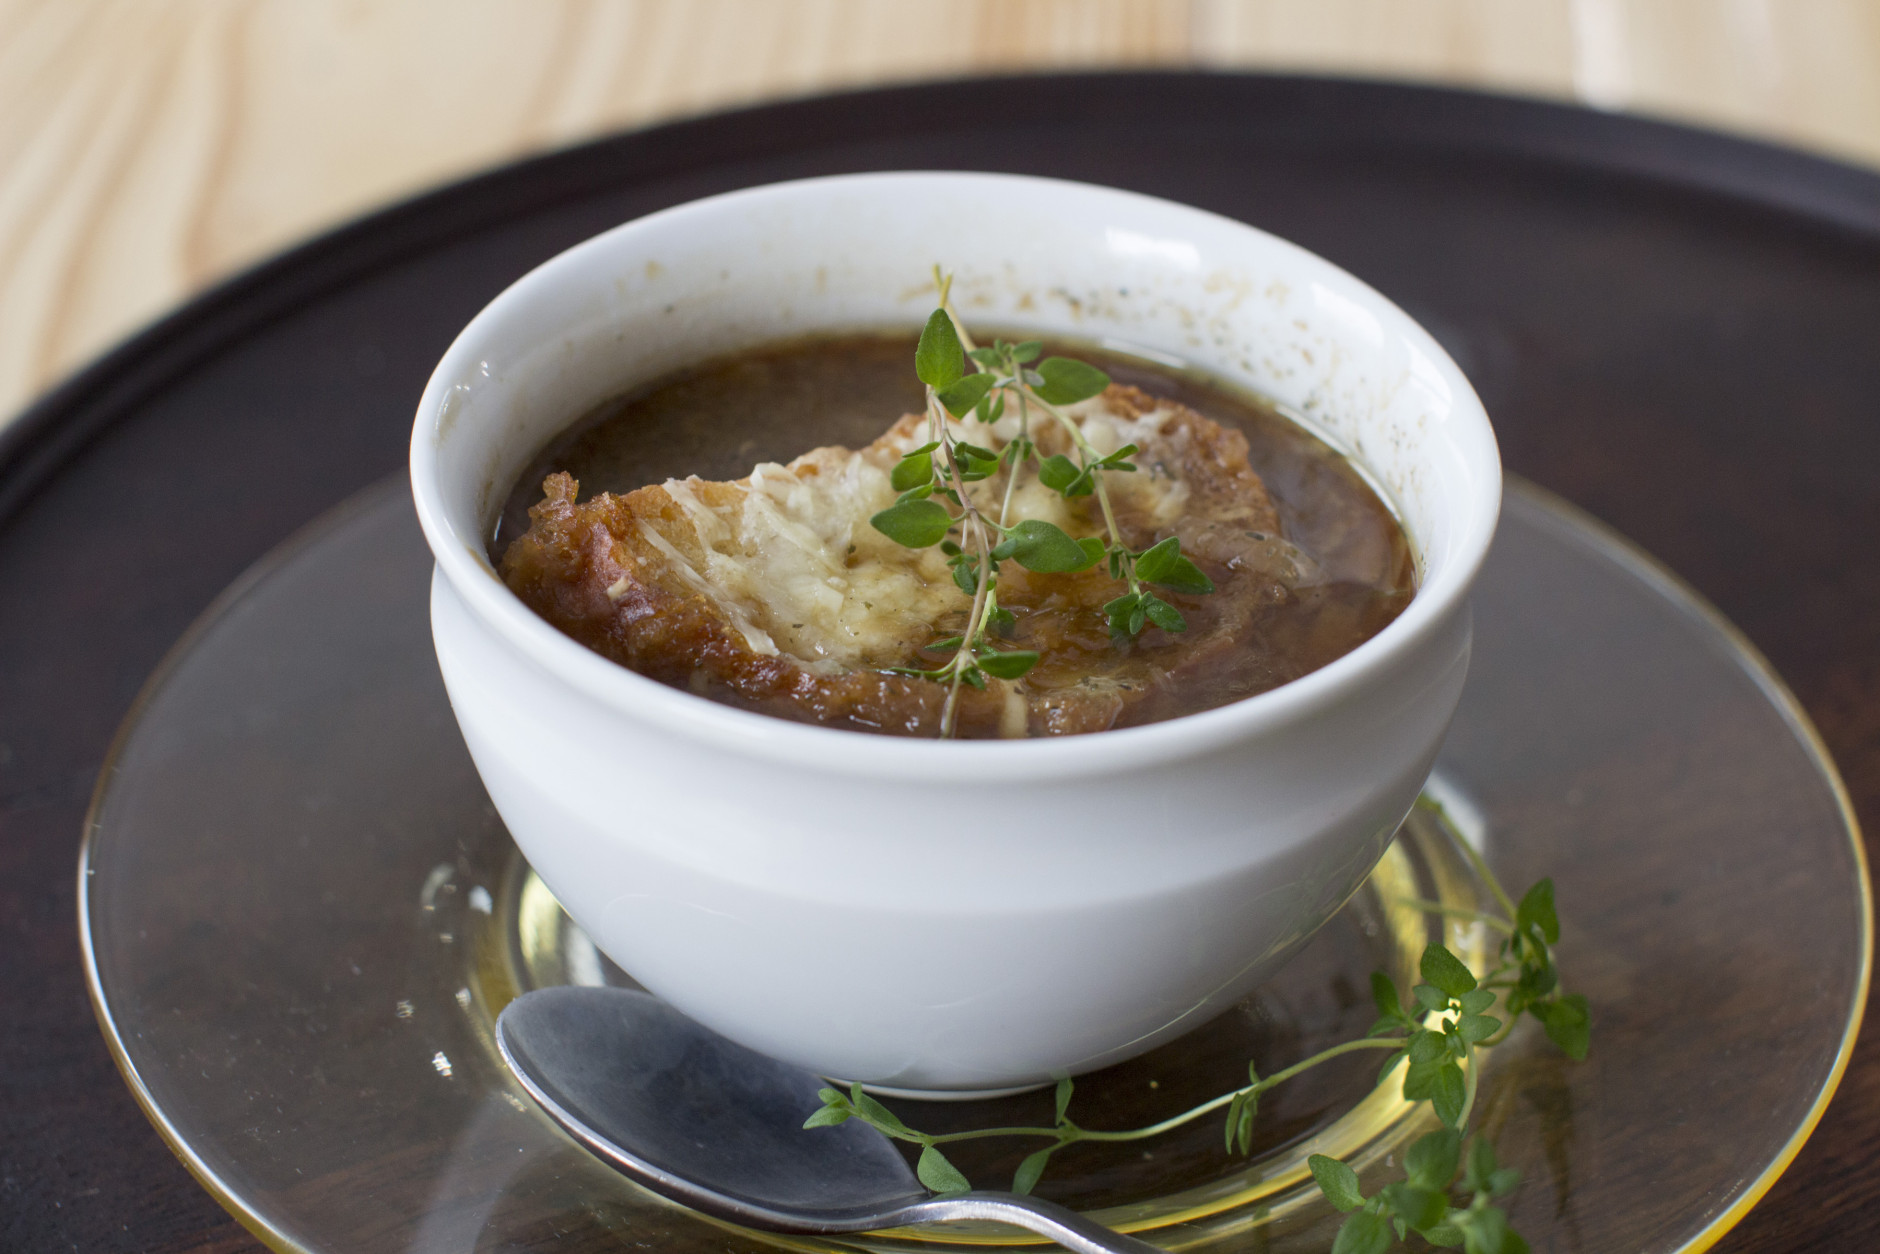 This Dec. 1, 2014 photo shows slow cooker onion soup in Concord, N.H. The humble onion is one the most common aromatic vegetables, popping up in so many ways across so many cuisines. (AP Photo/Matthew Mead)